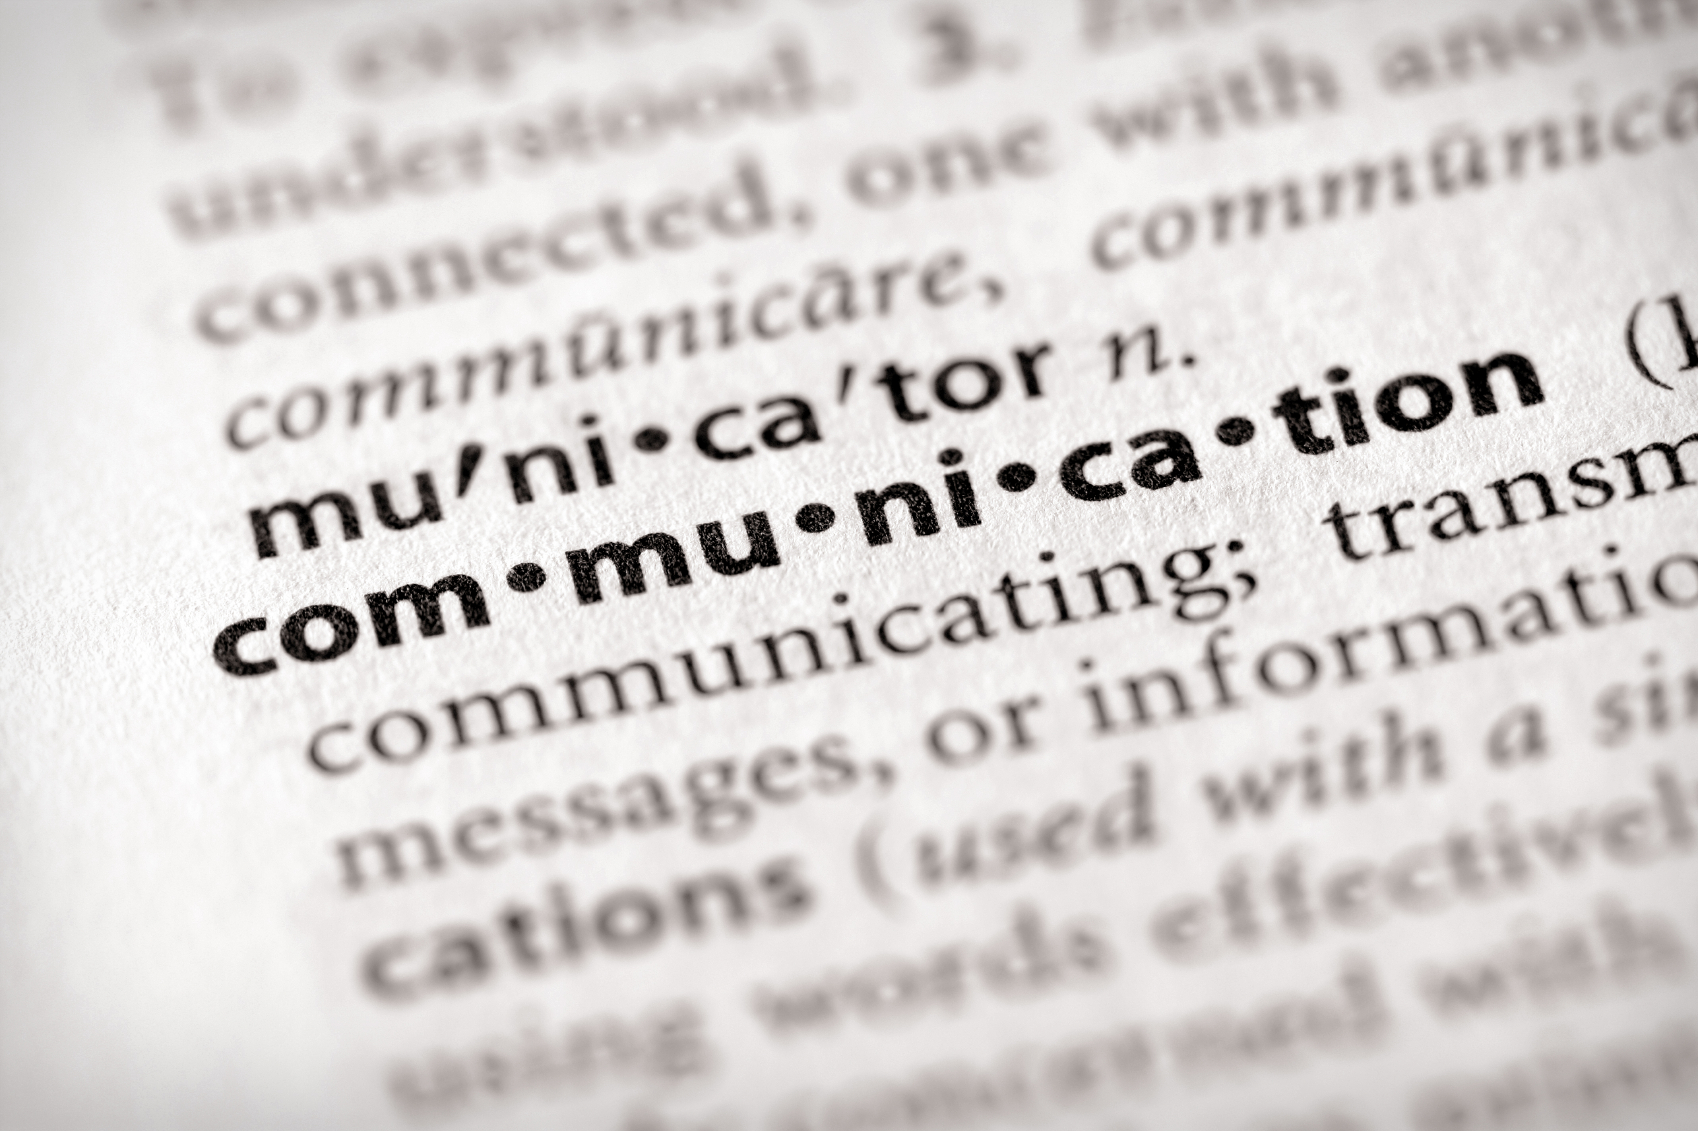 An Awesome Course on Effective CommunicationContinuing Education for